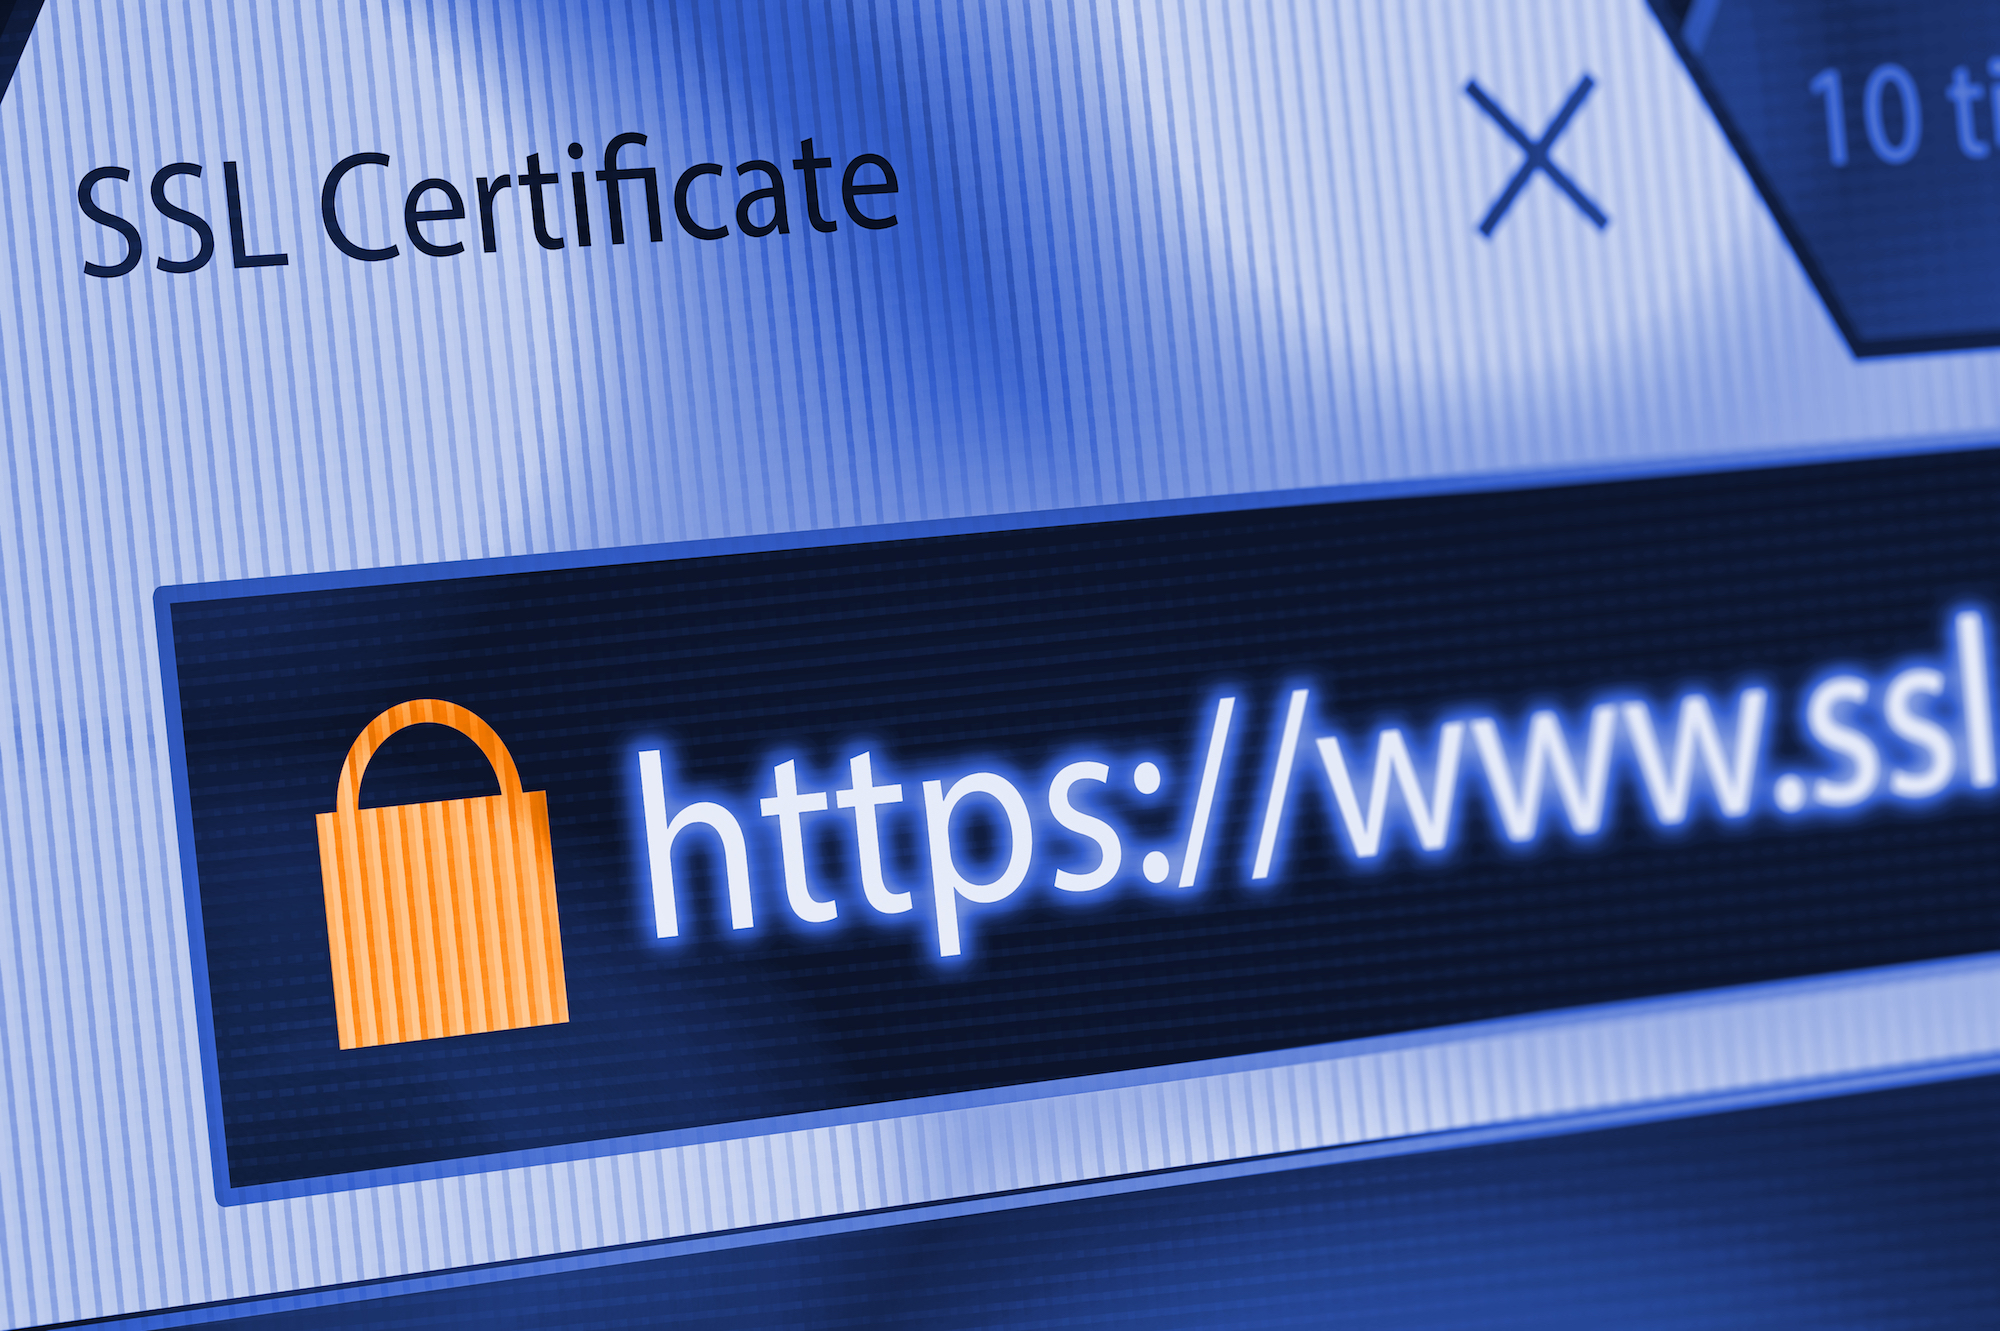 HTTP vs HTTPS – which is best for SEO and the future of the internet